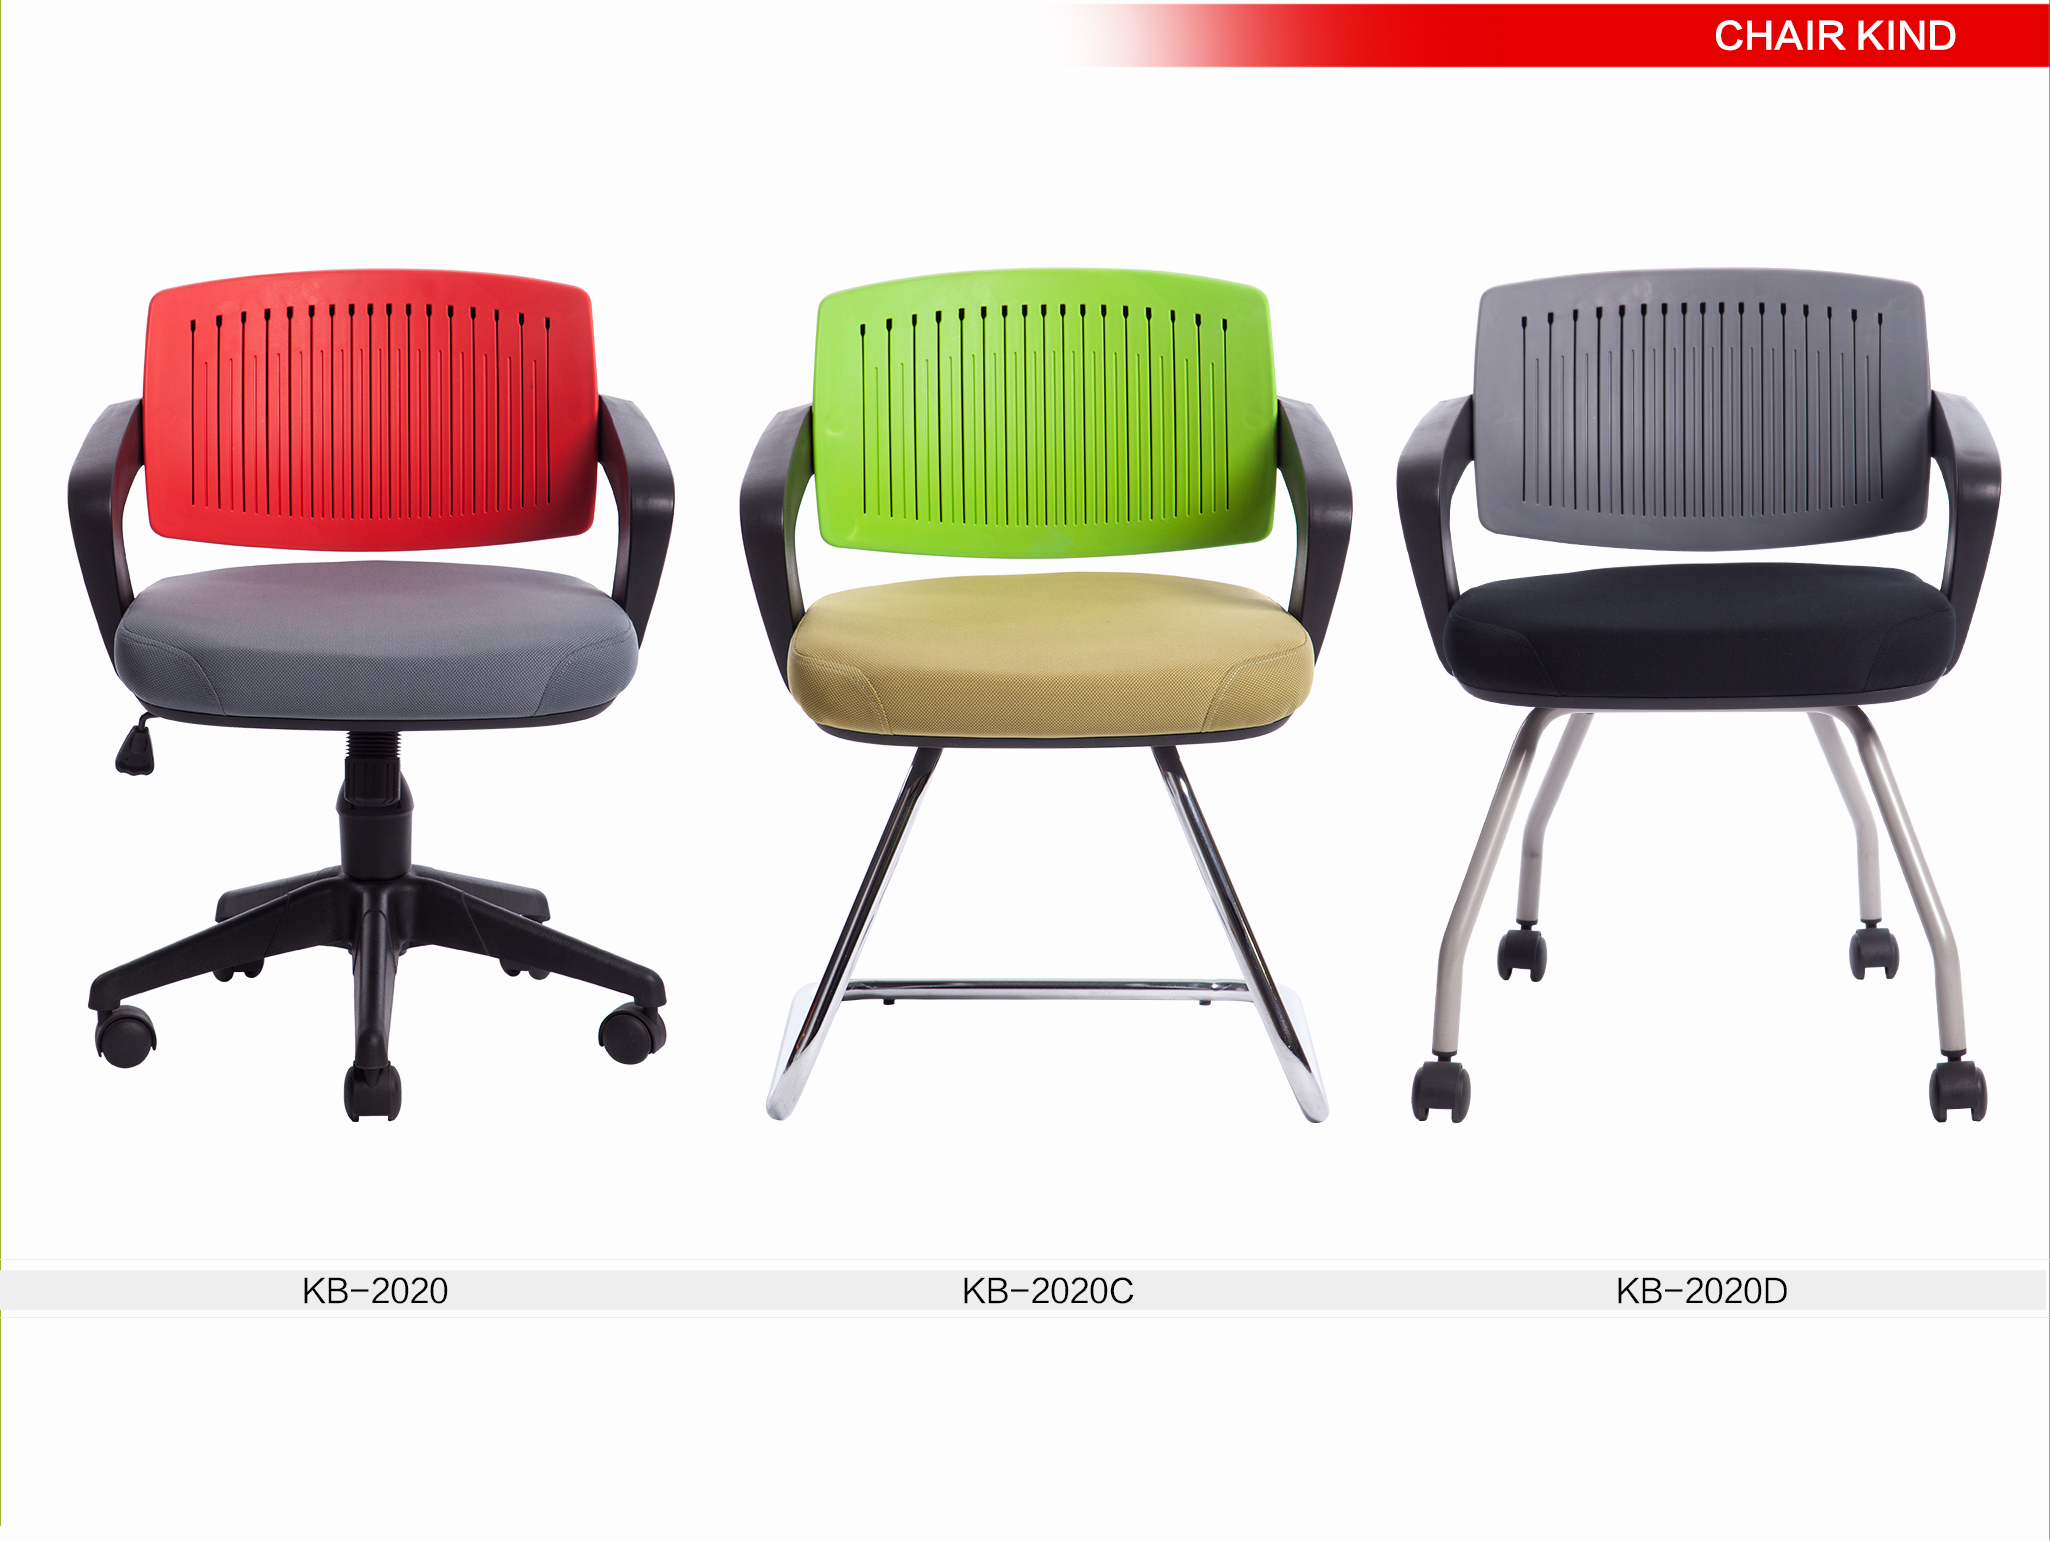 KB-2020 Modern Cute Office Chairs Office Furniture - Buy ...